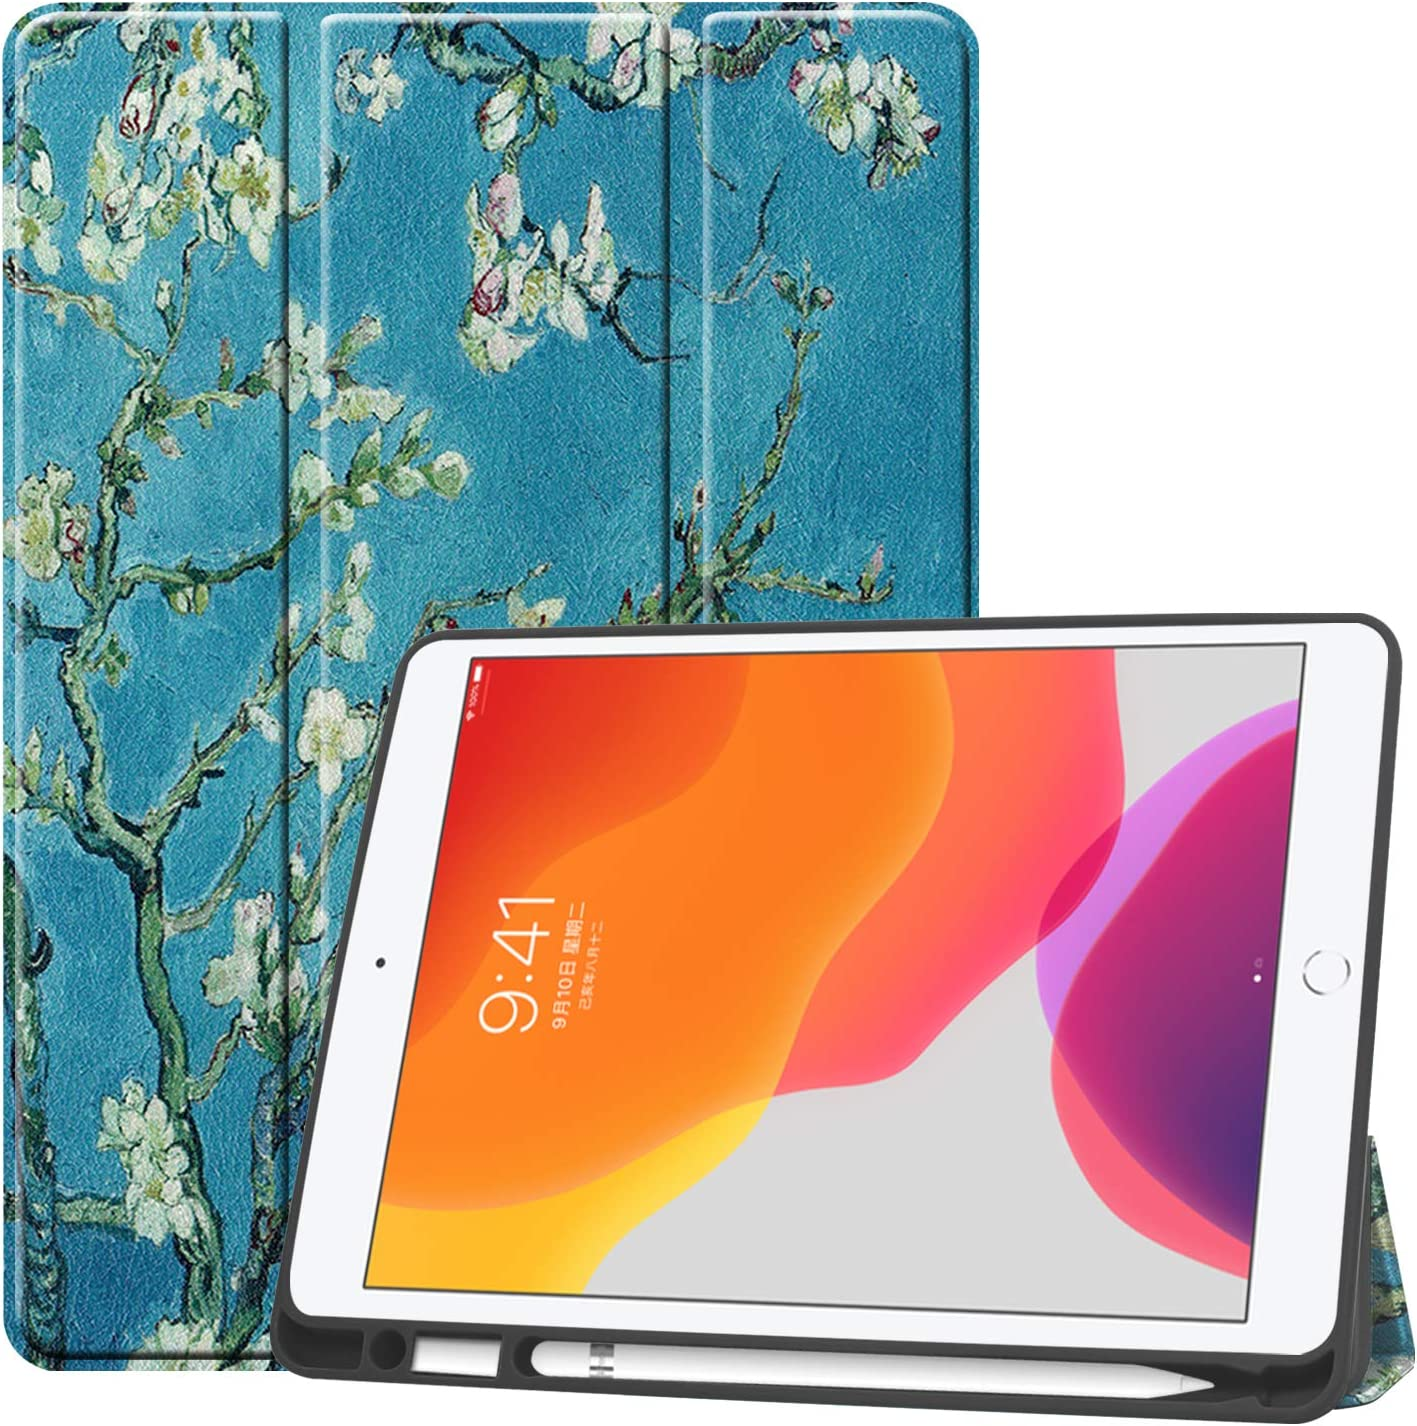 New iPad 10.2 Case with Pencil Holder - Slim Tri-Fold Case for iPad 8th Generation 2020/ iPad 7th Generation 2019 Apple Tablet, with Microfiber Inner Auto Wake/Sleep Protective Smart Cover (Apricot)